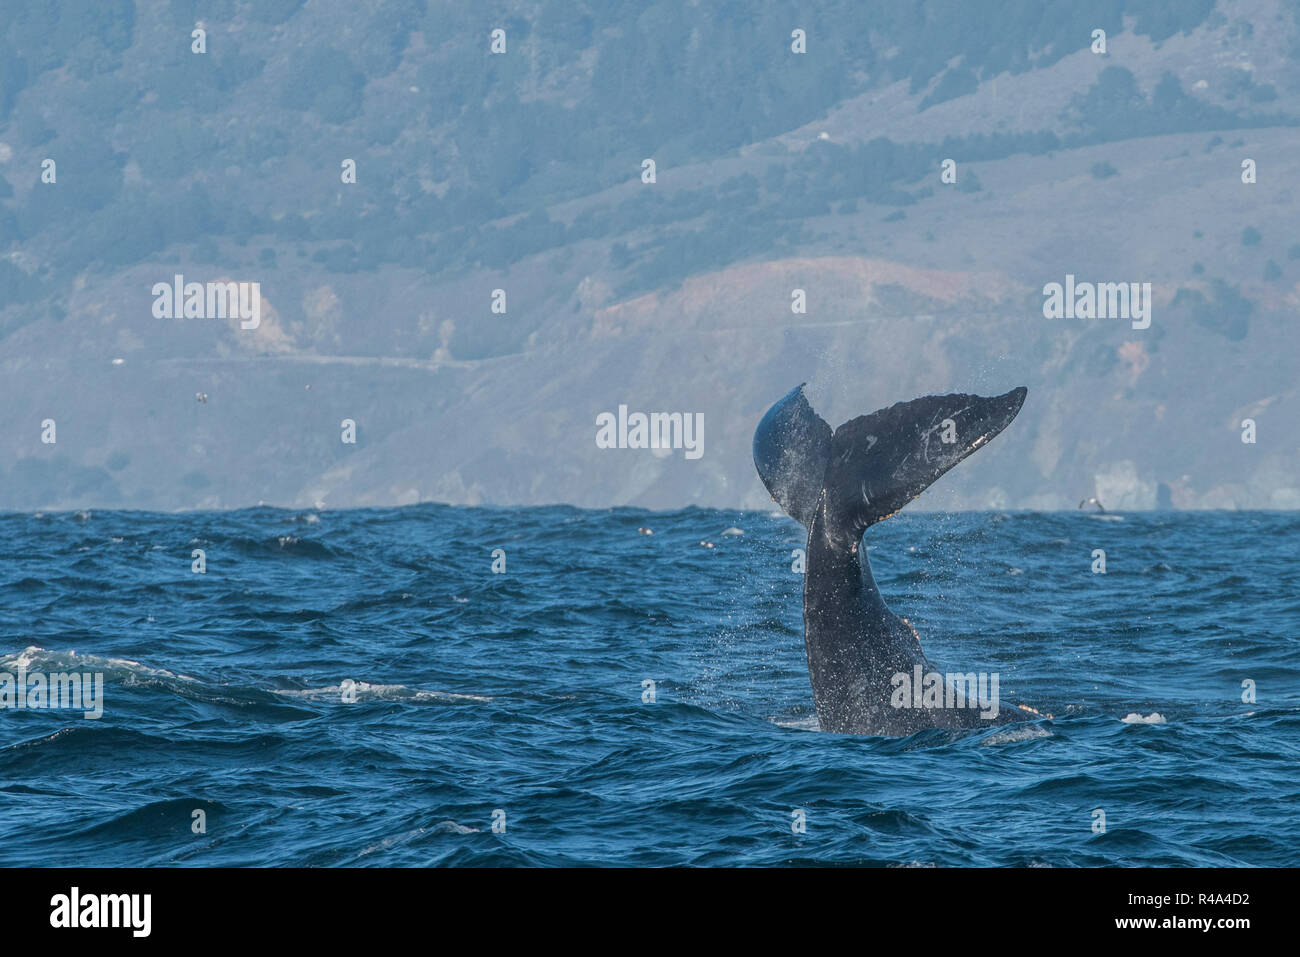 A humpback whale engaging in tail slapping behavior or lobtailing, a form of communication, off the coast of California. - Stock Image